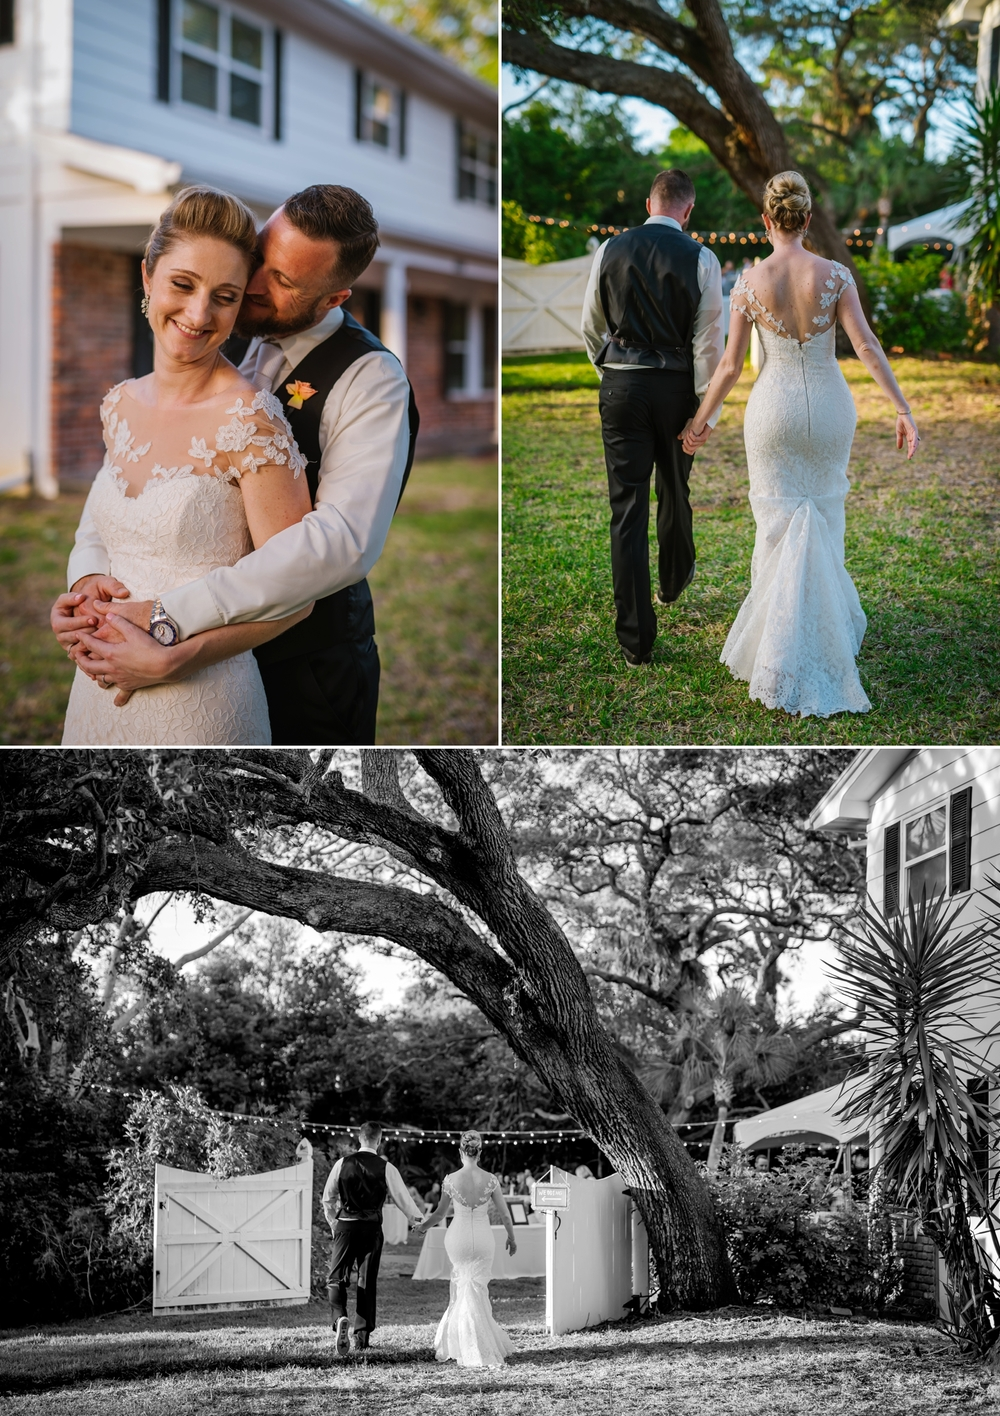 ashlee-hamon-photography-tampa-contemporary-colorful-bed-and-breakfast-wedding_0031.jpg